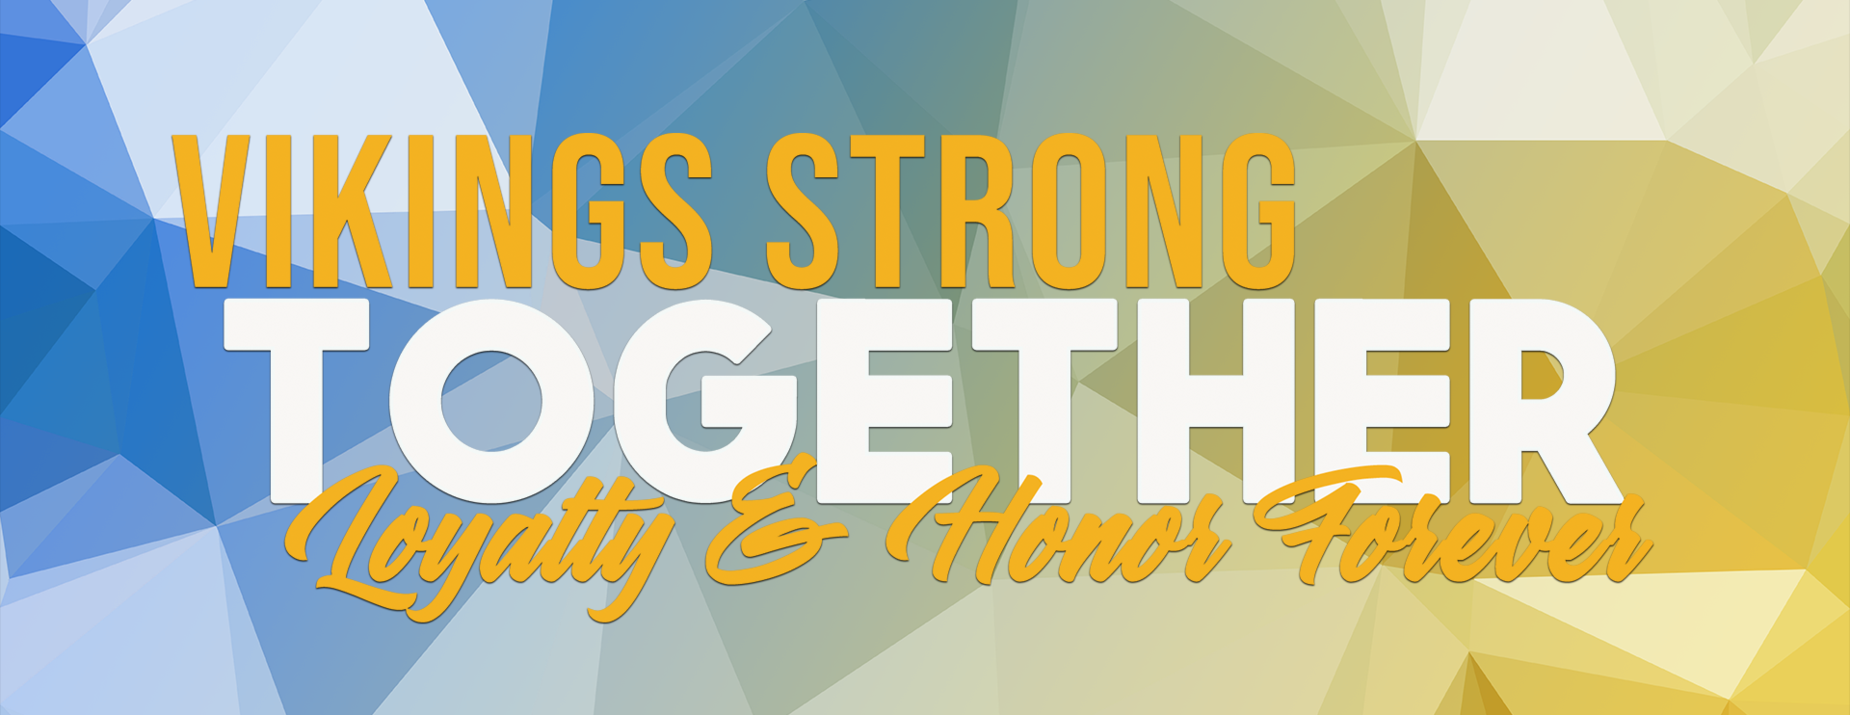 Theme for SY 20-21: Vikings Strong Together, Loyalty and Honor Forever